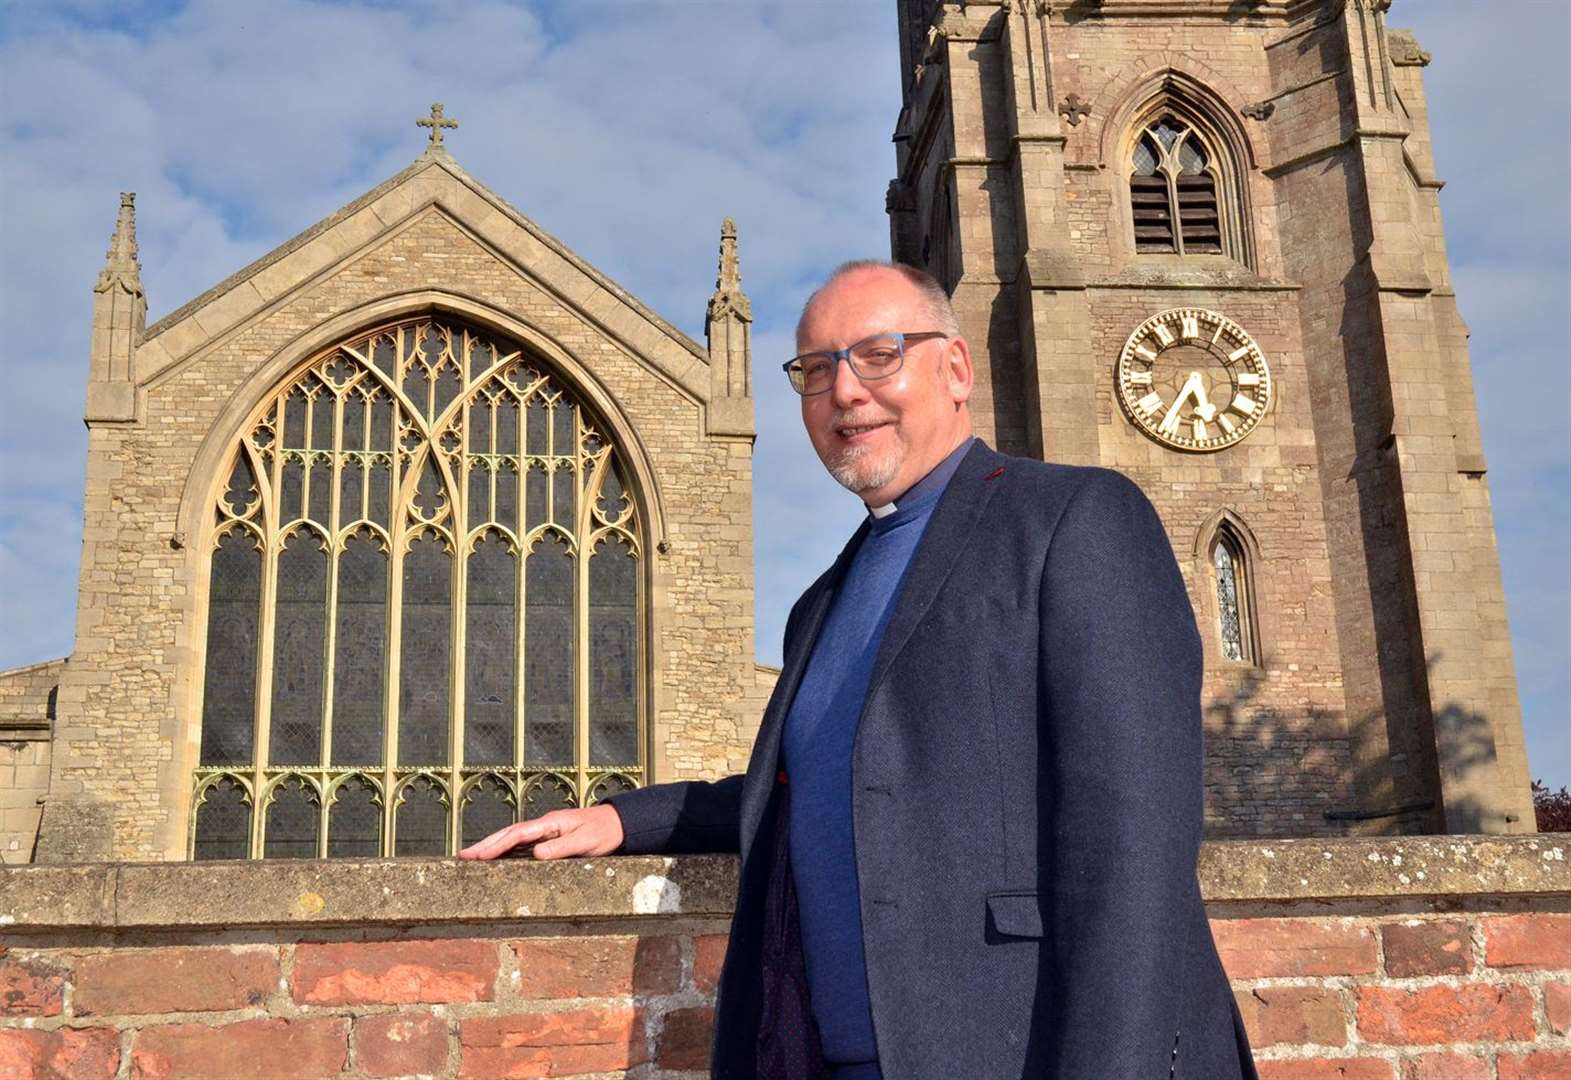 No church bells to be rung here for Brexit